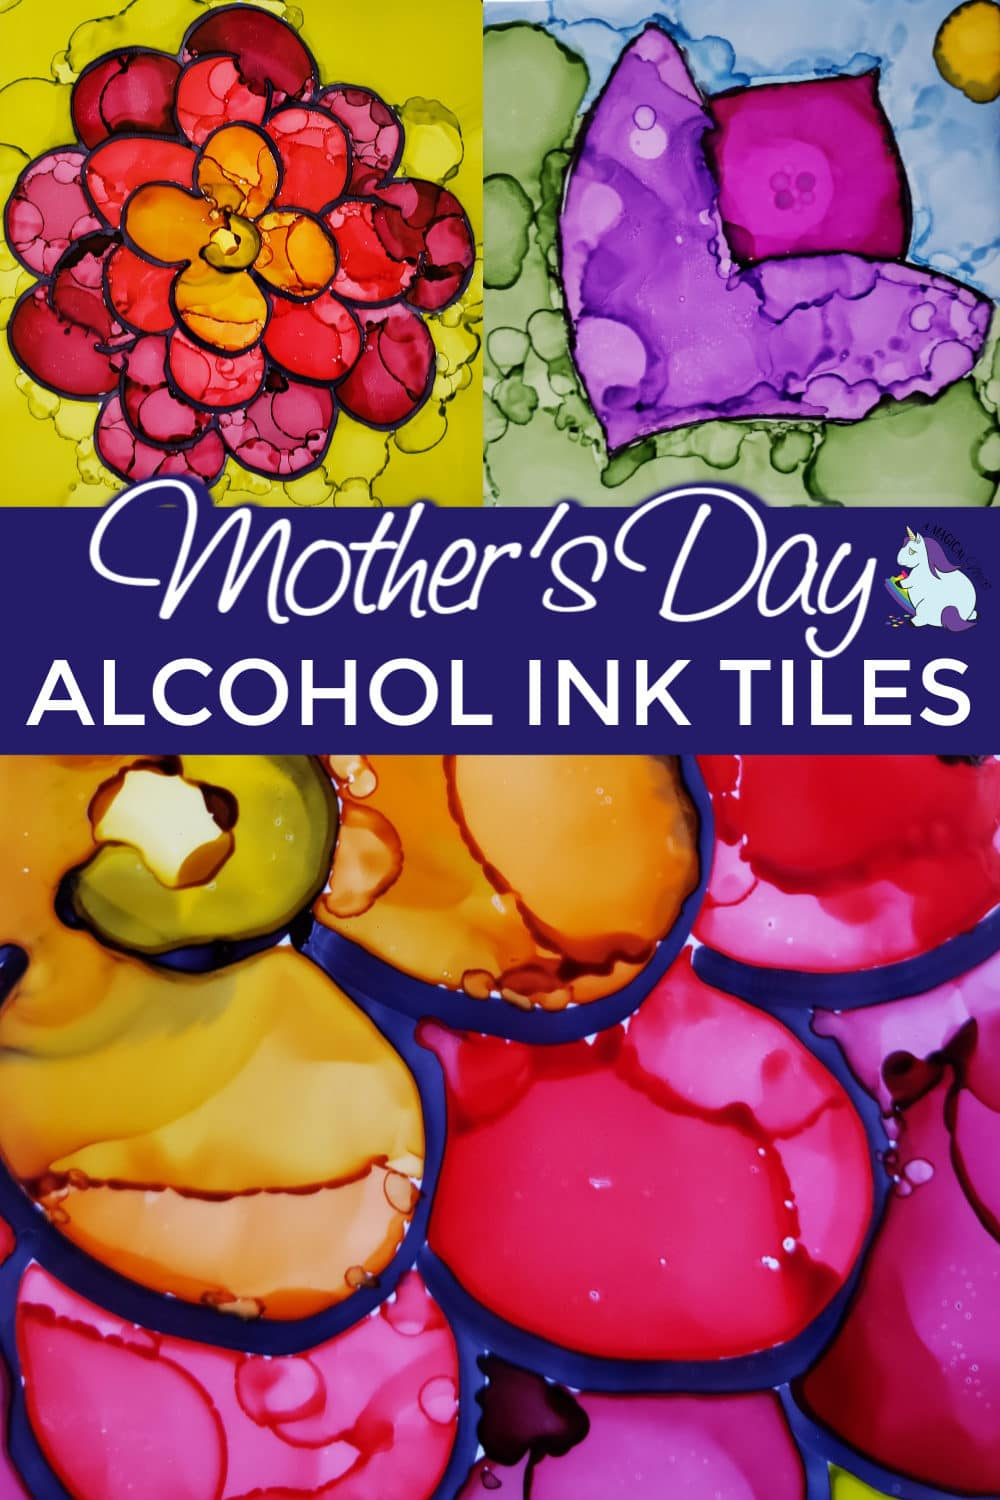 Mother's Day Alcohol Ink Tiles